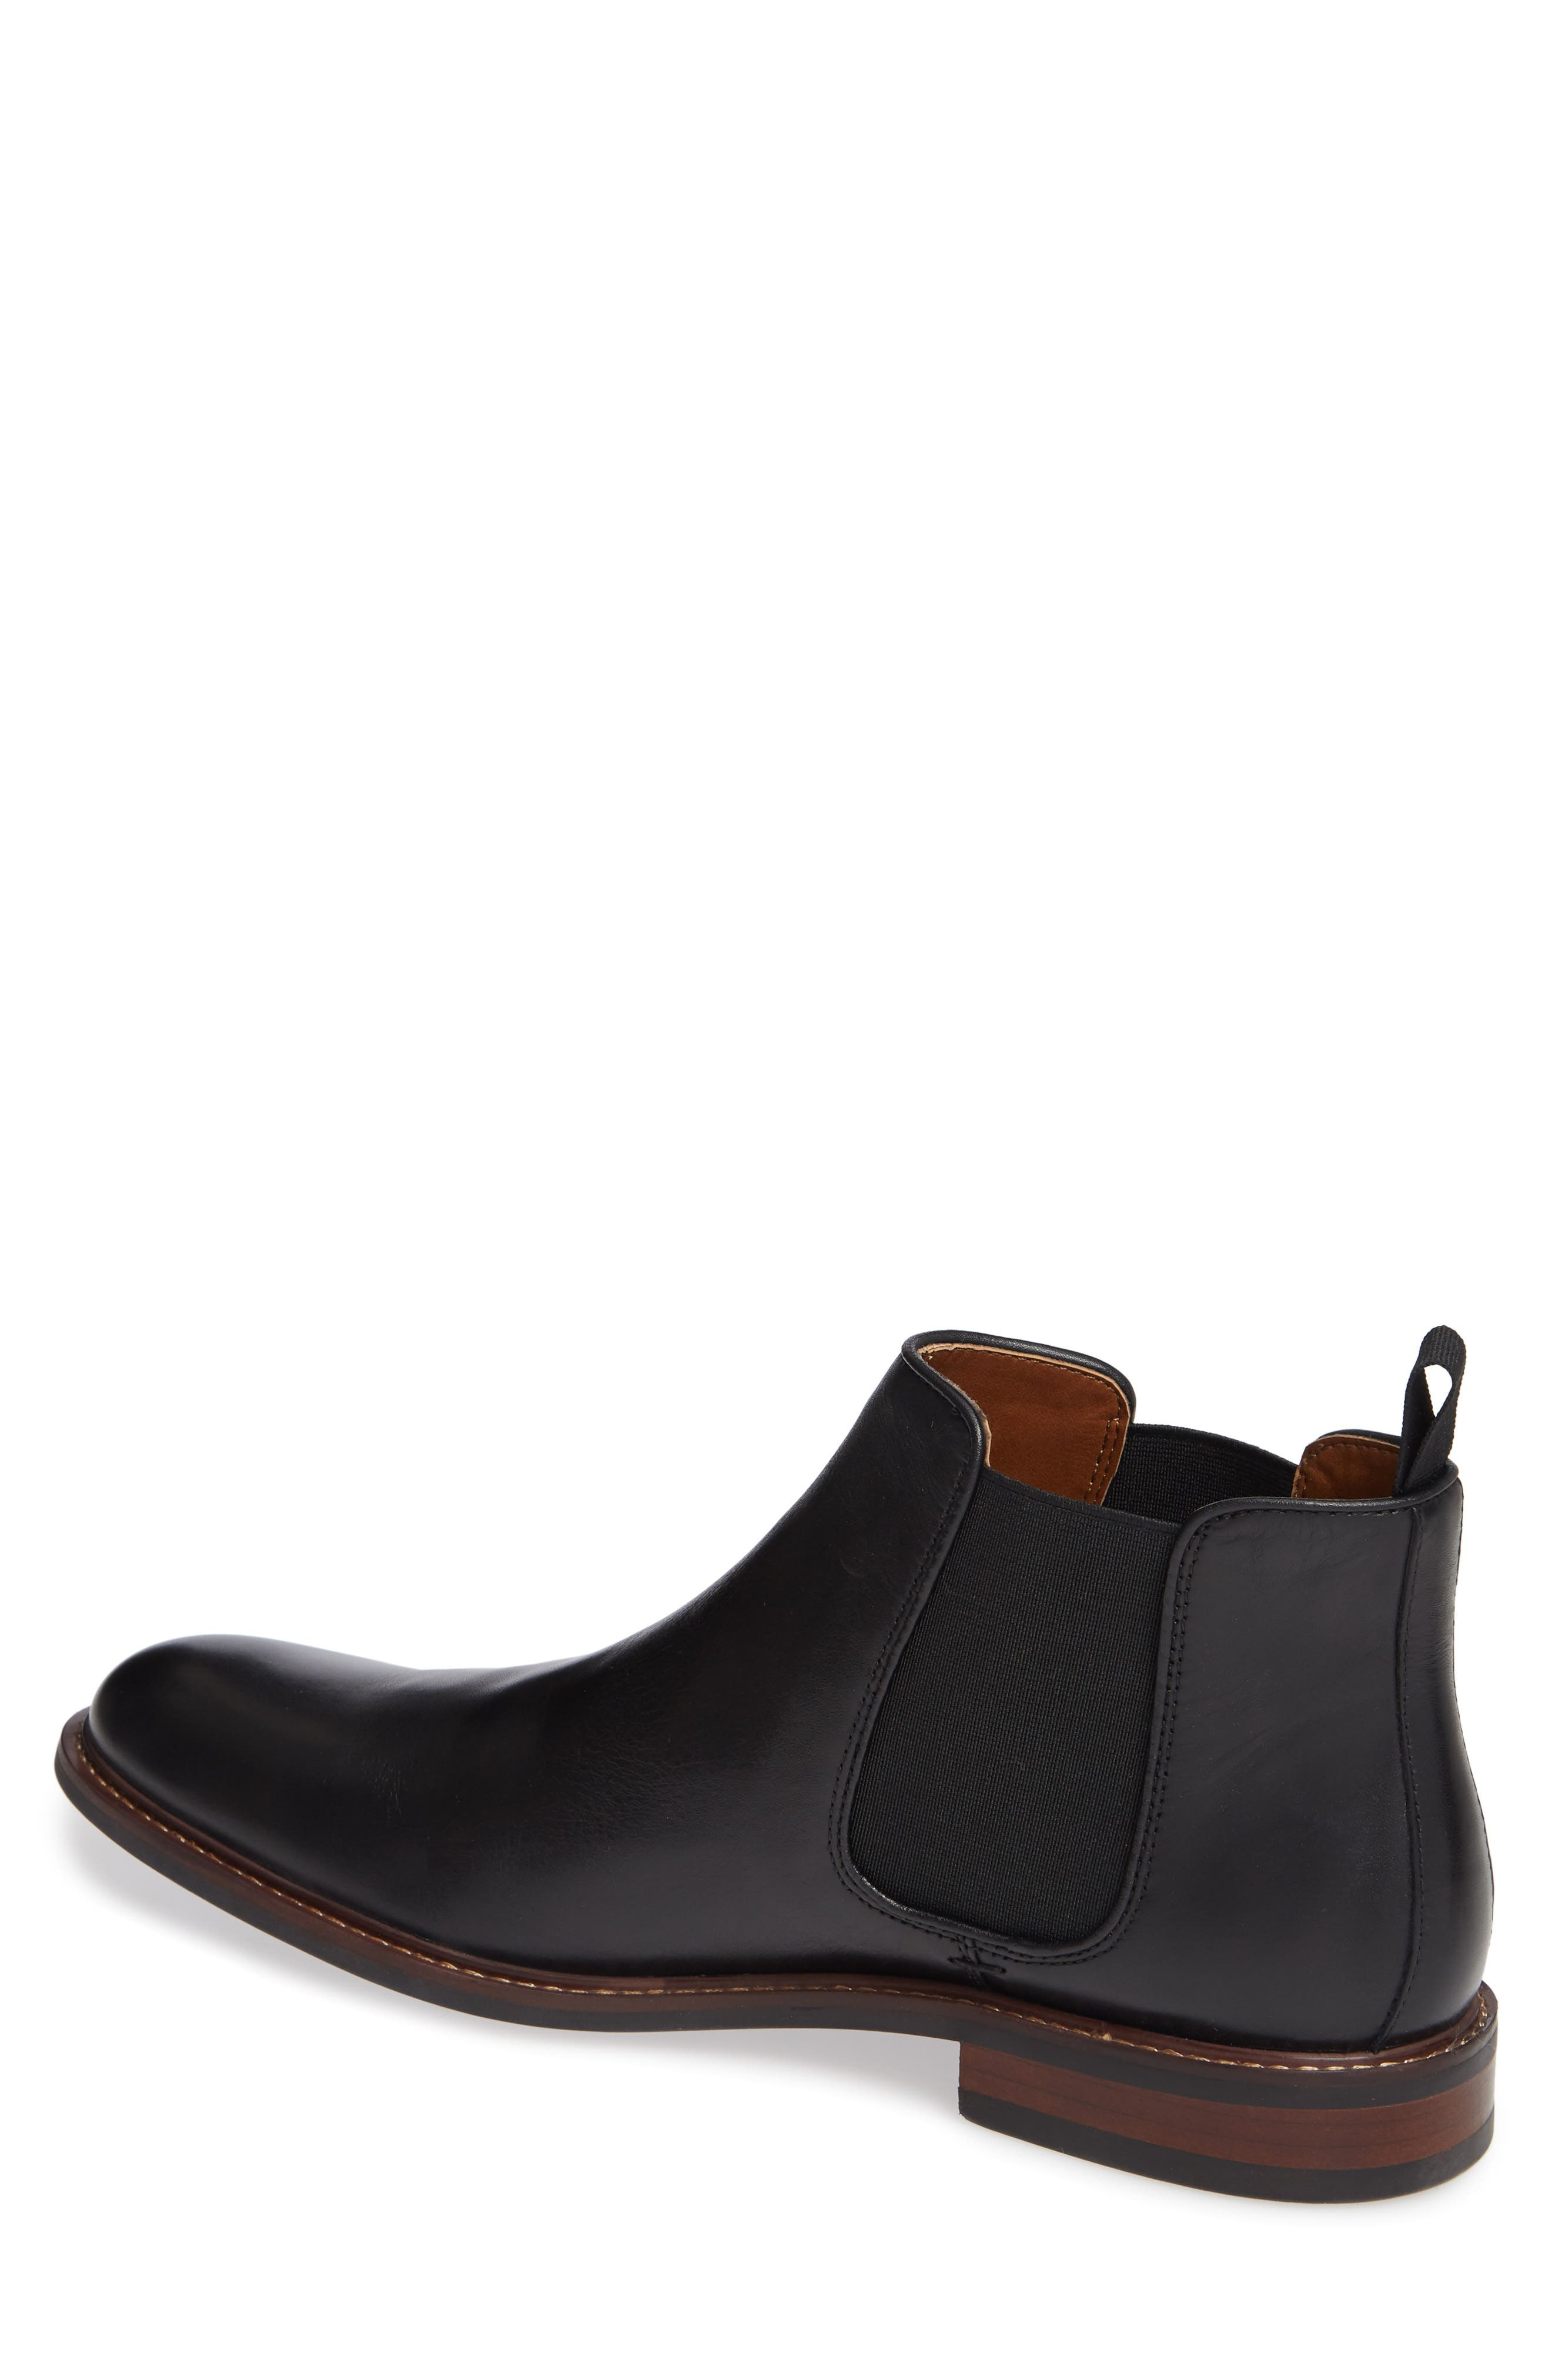 NORDSTROM MEN'S SHOP, David Chelsea Boot, Alternate thumbnail 2, color, BLACK LEATHER